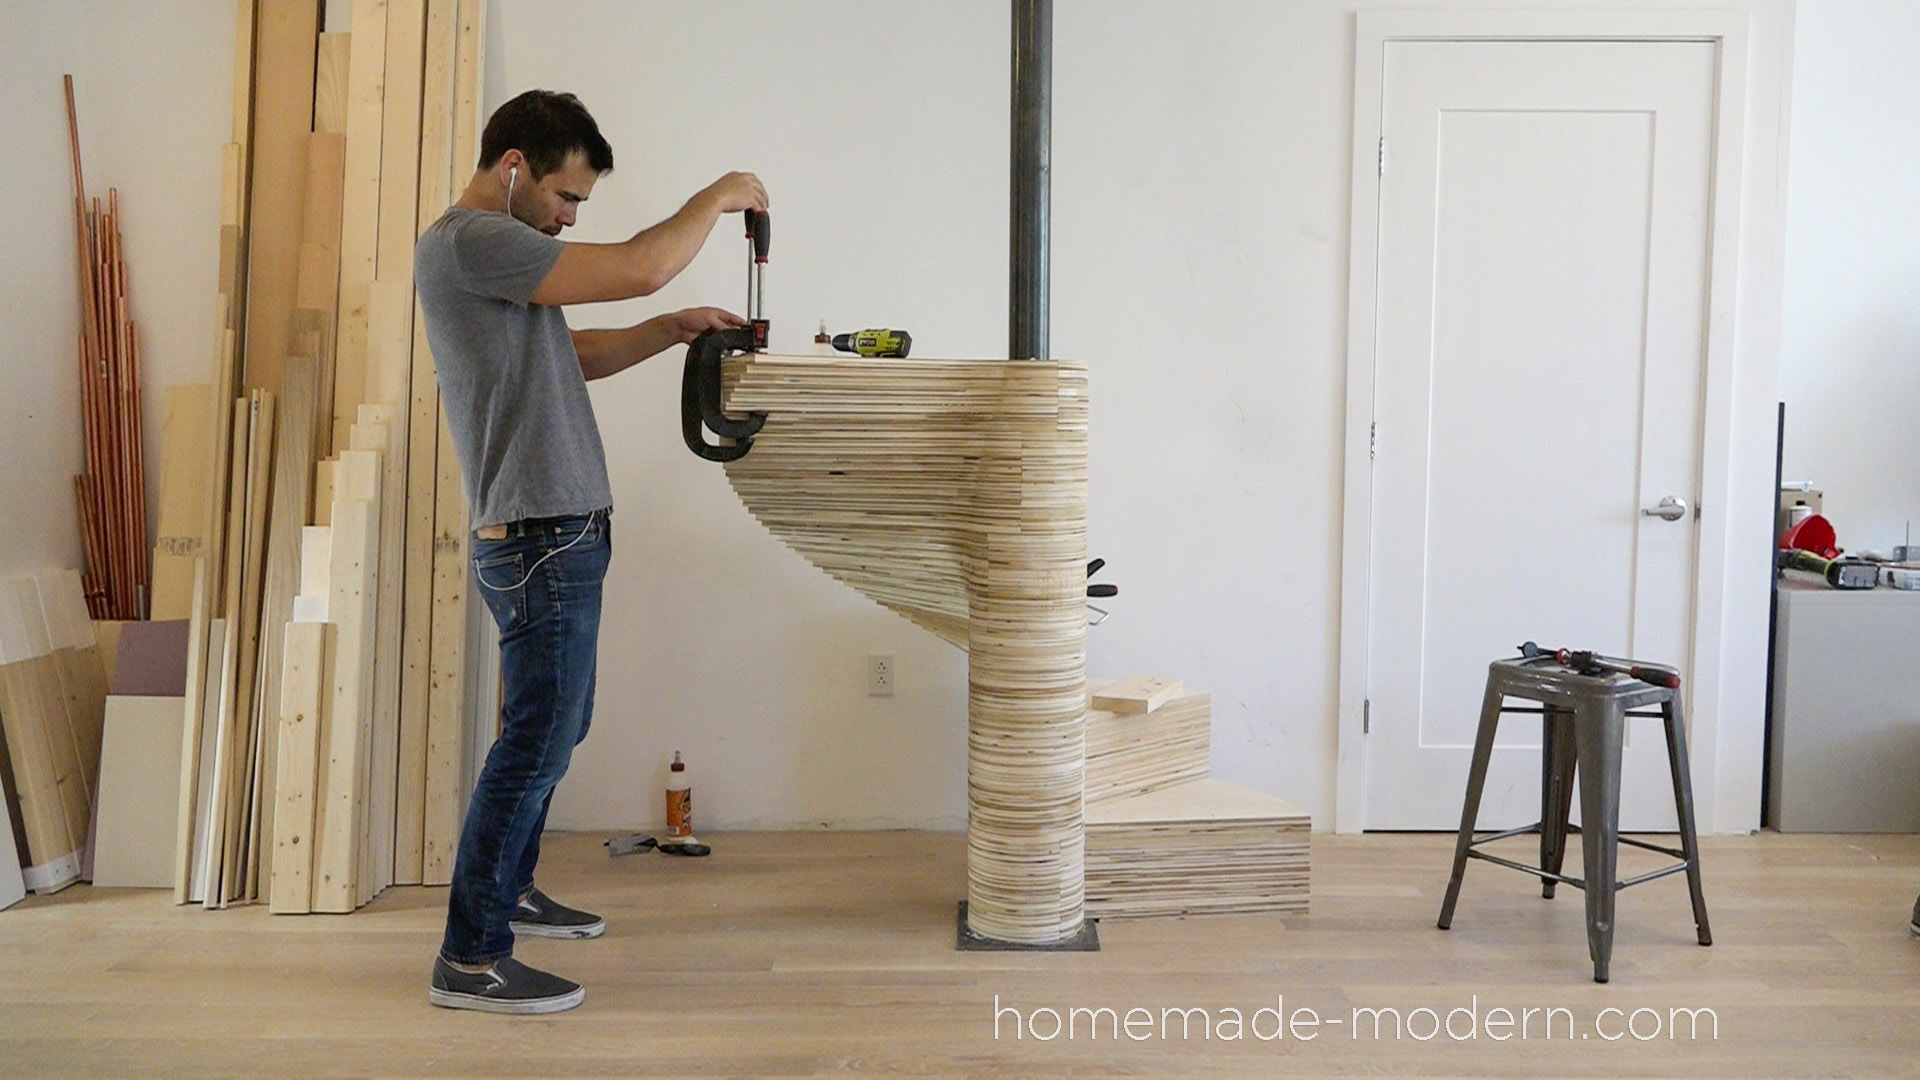 "This CNCed Spiral staircase was made using the X-Carve by Inventables.com and is made from ¾"" thick furniture grade plywood. For more information go to HomeMade-Modern.com"